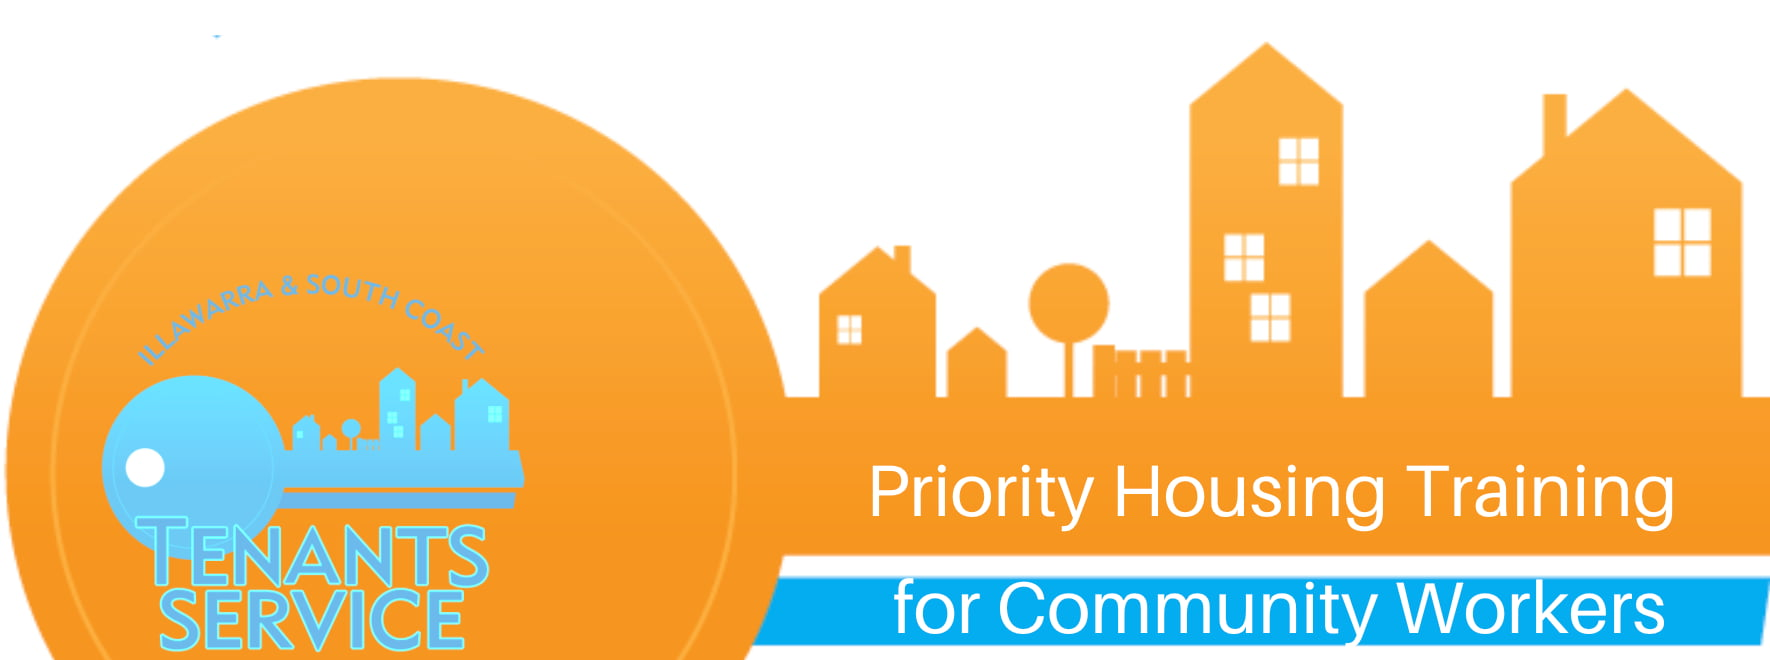 Priority Housing Training for Community Workers – 14 April 2021